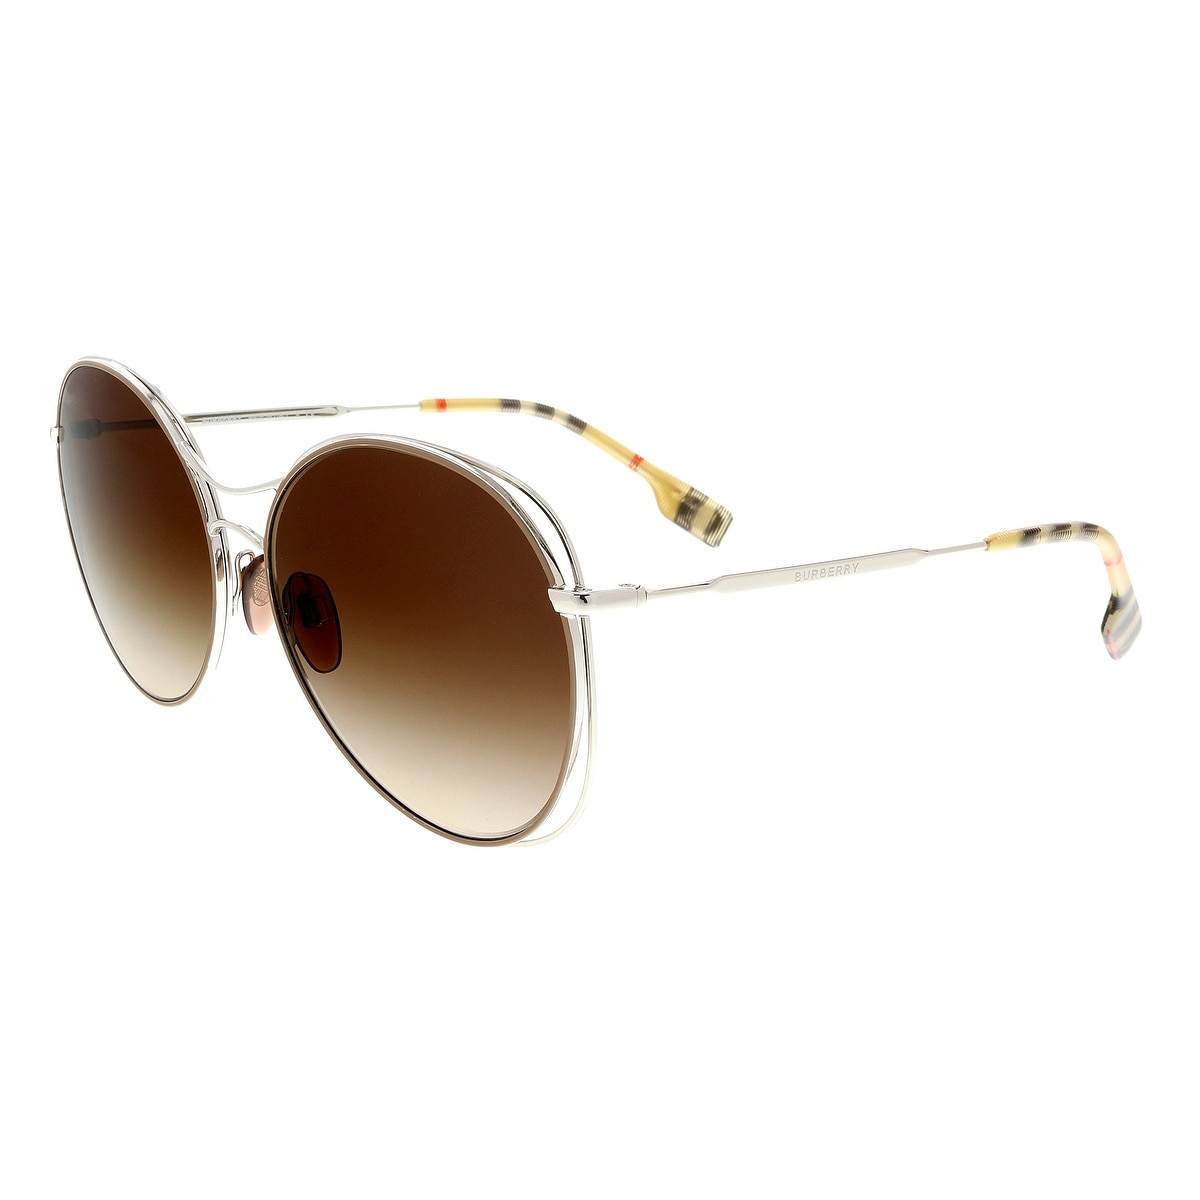 53ea155cd3ba Burberry Sunglasses | Shop our Best Clothing & Shoes Deals Online at  Overstock